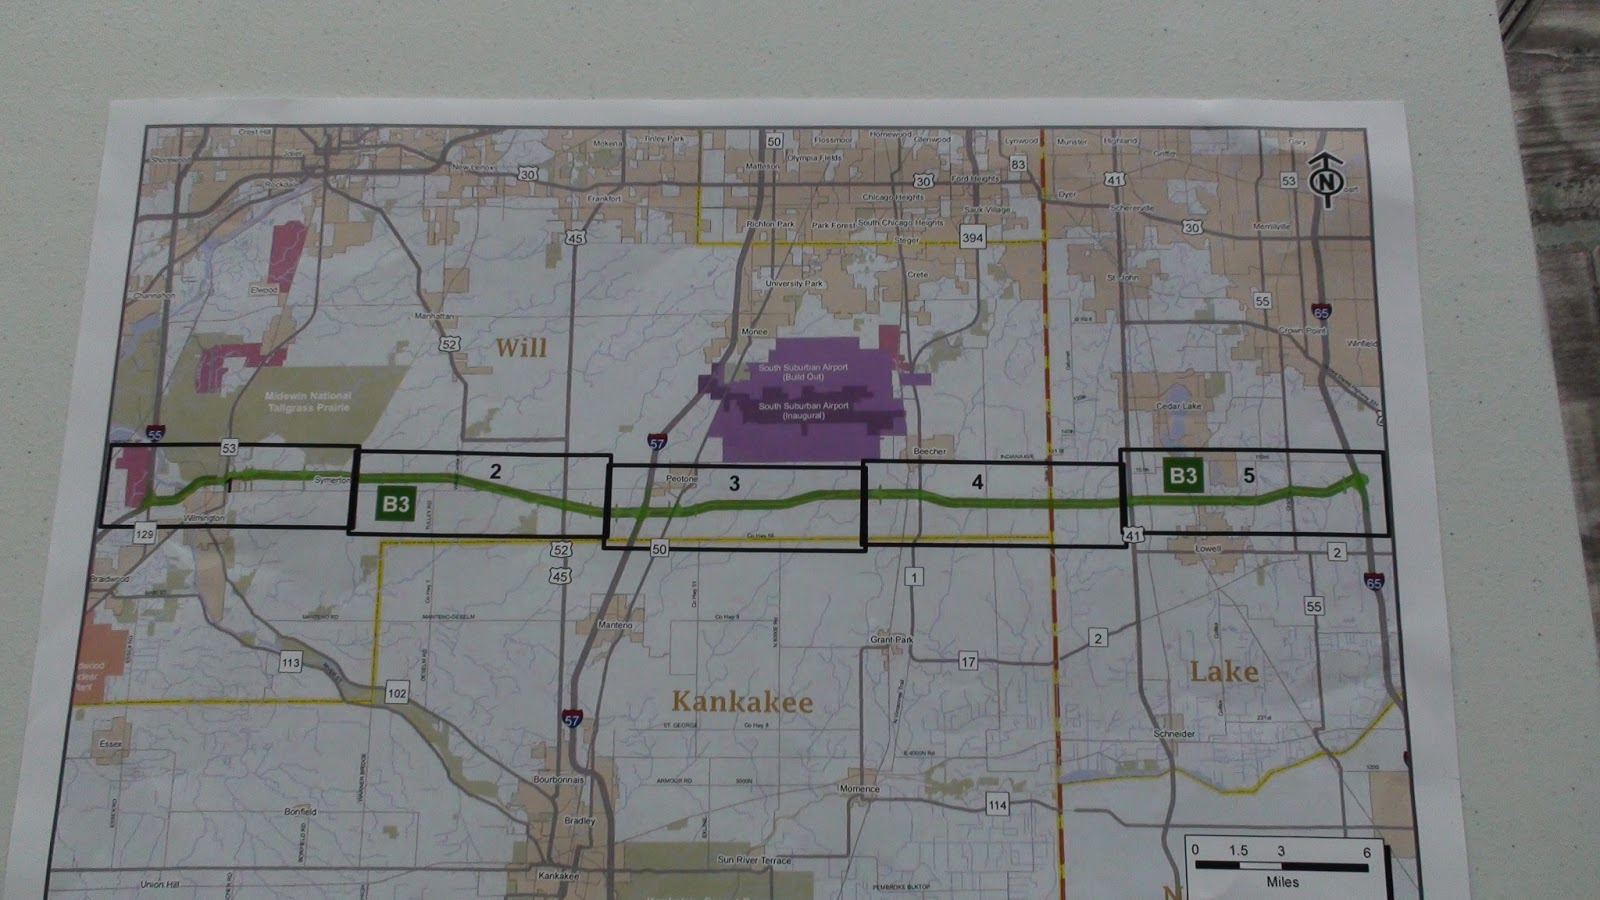 Illinois will county peotone - Illiana Expressway B3 Alignment And Peotone Airport Footprint Map